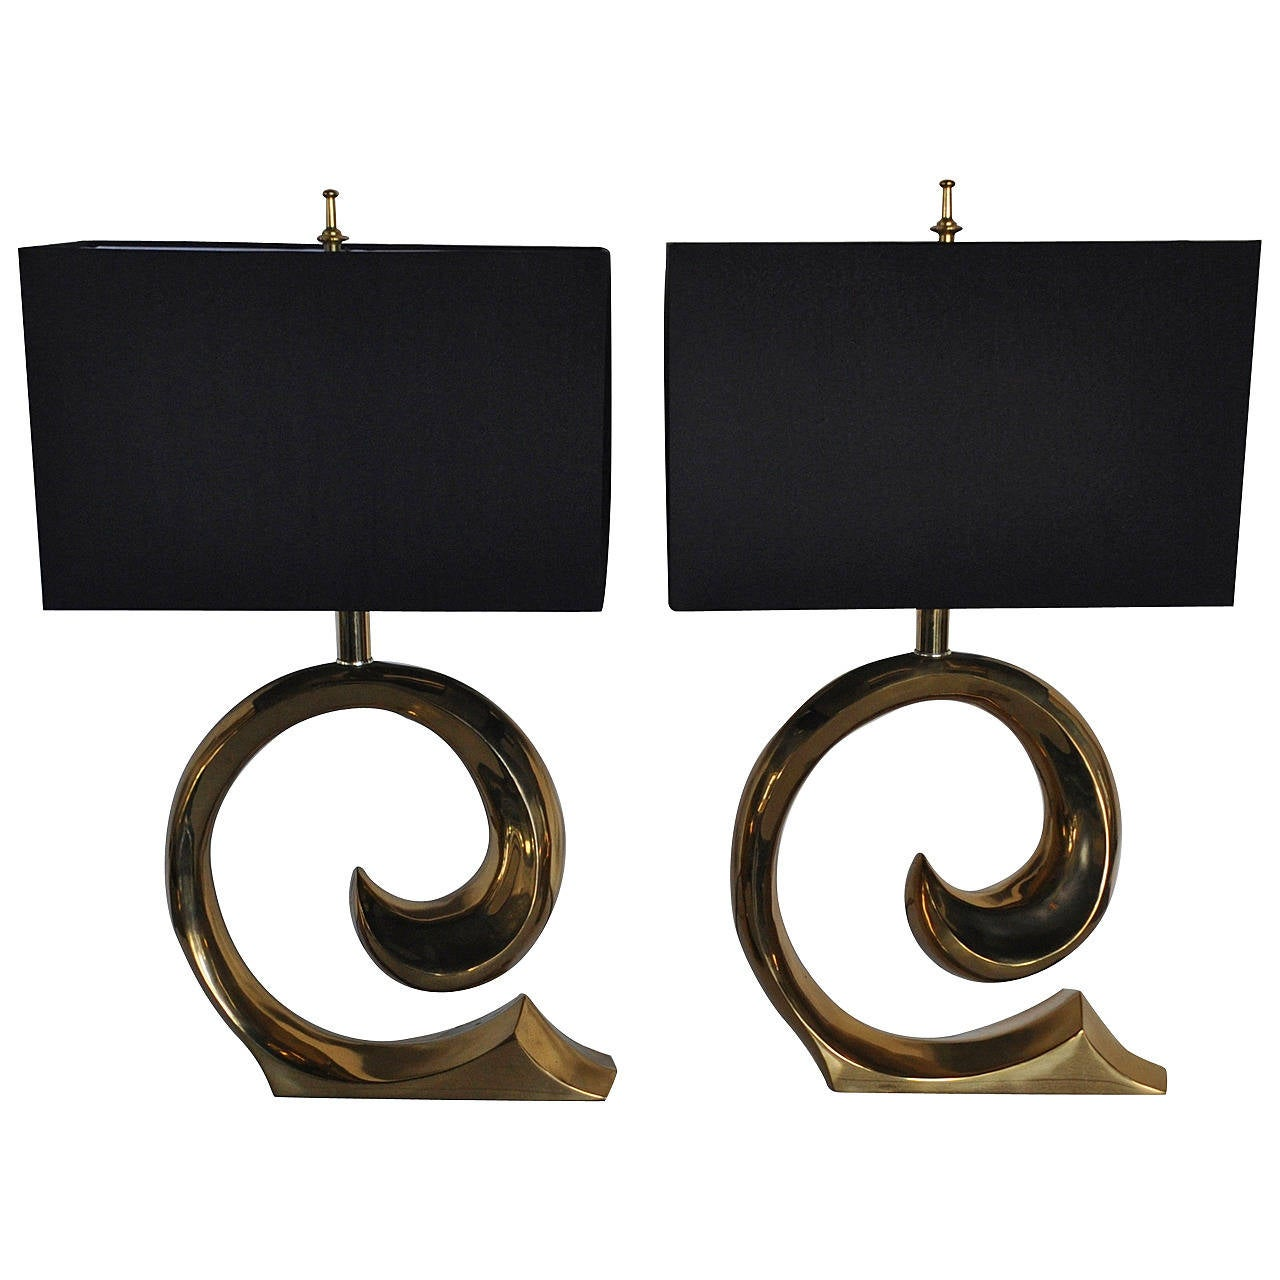 Pair of brass lamps by pierre cardin for sale at 1stdibs pair of brass lamps by pierre cardin for sale biocorpaavc Choice Image